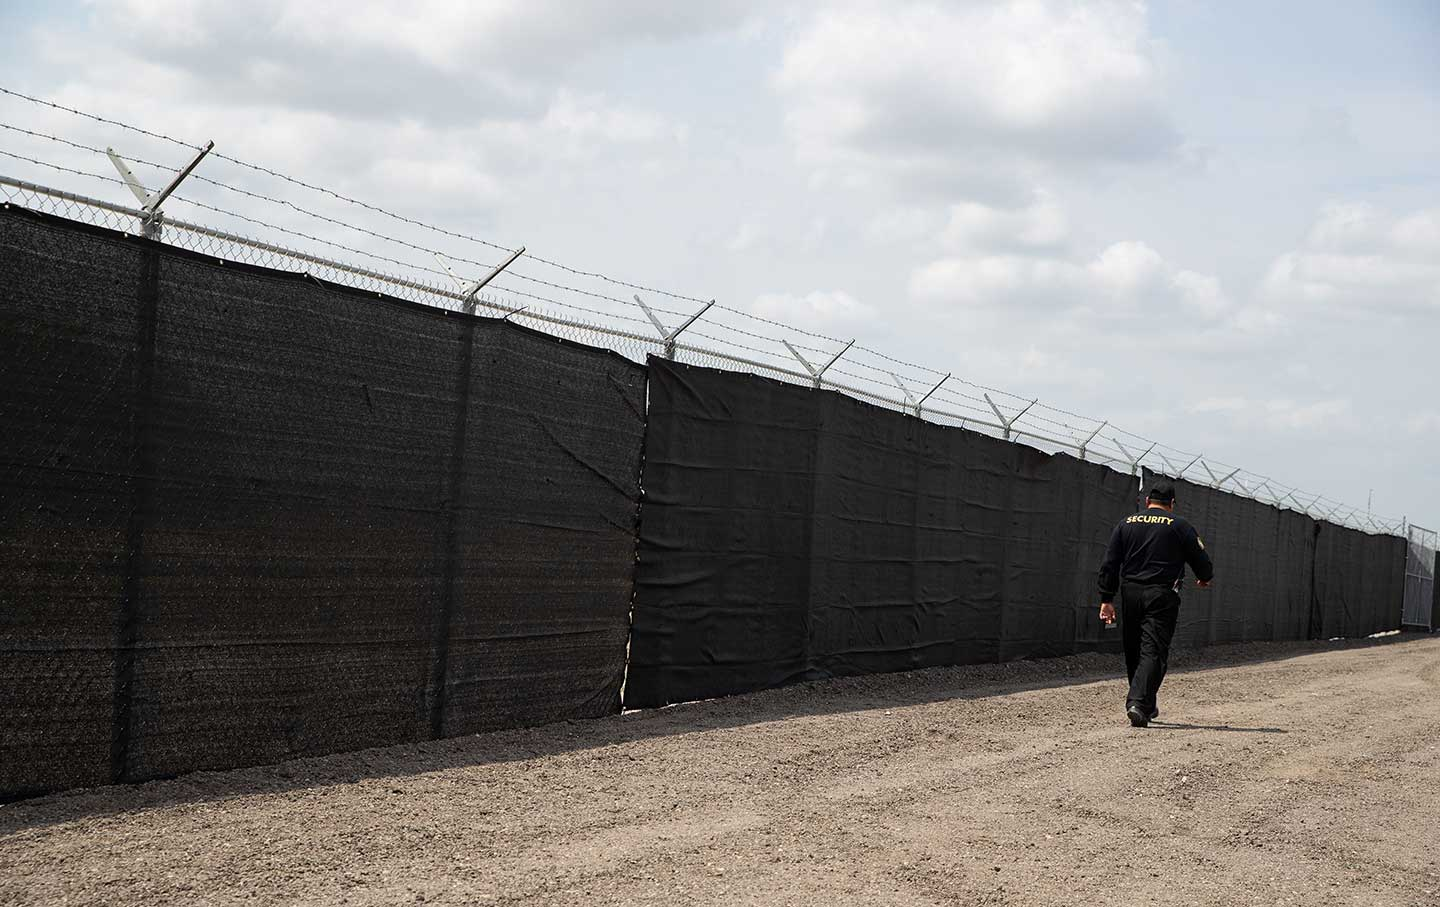 migrant-detention-fence-rtr-img